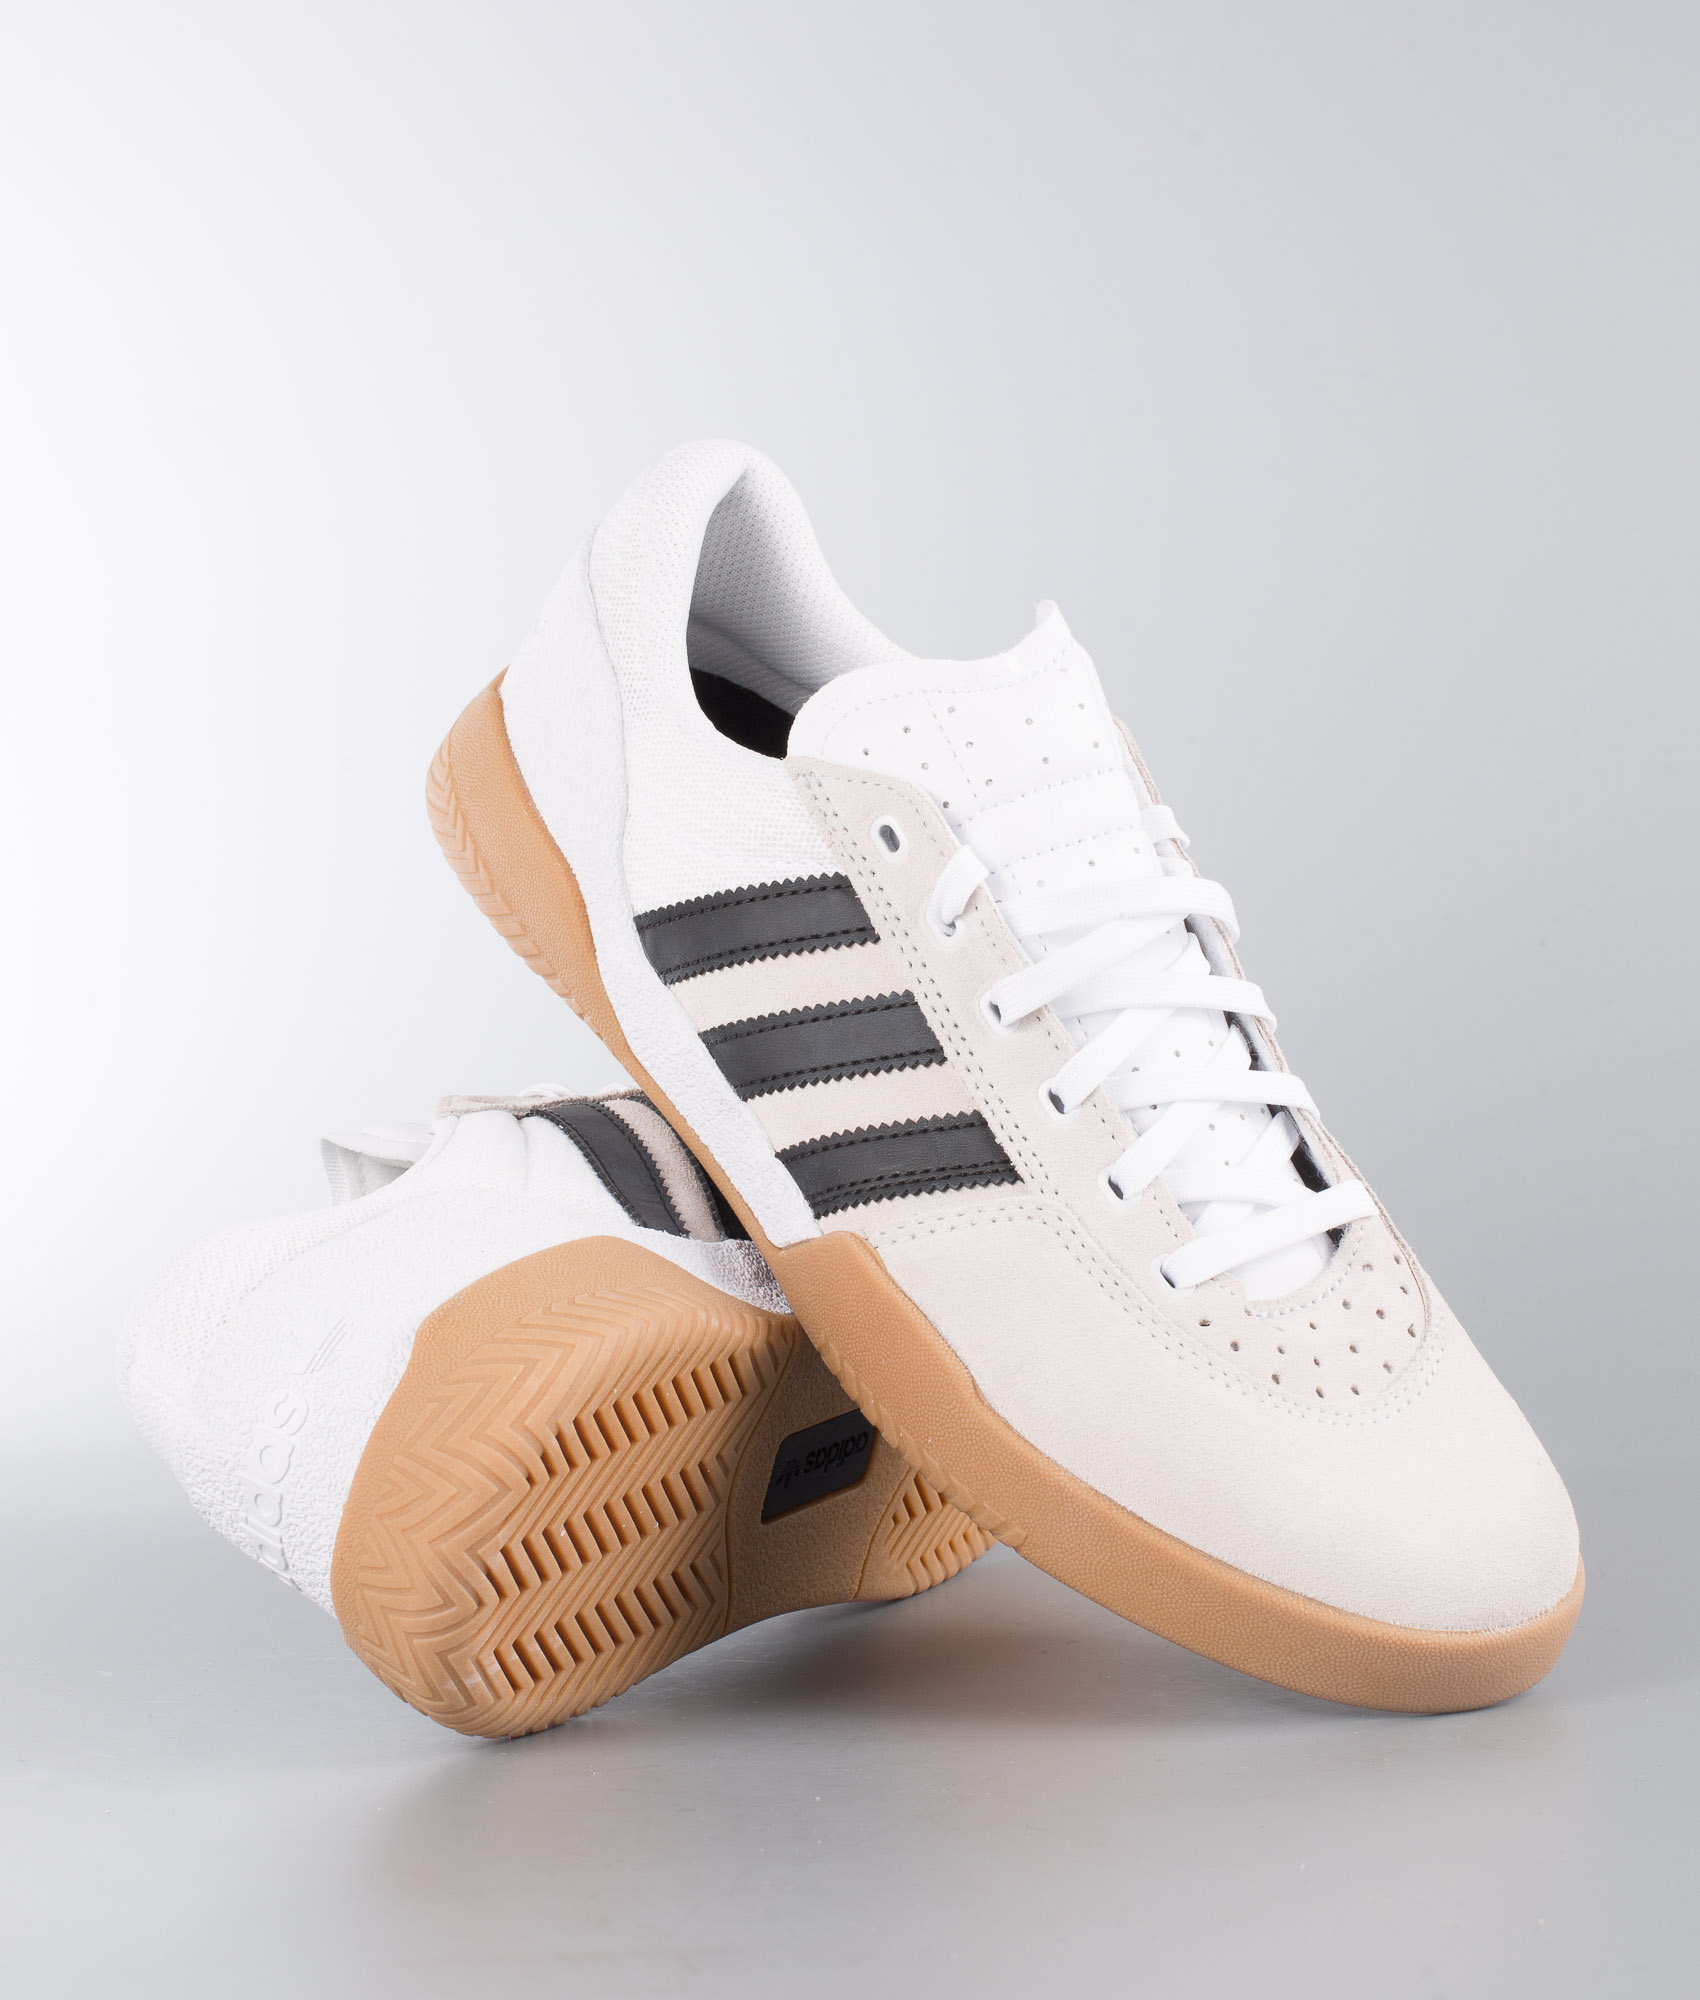 Adidas Skateboarding City Cup Shoes Footwear WhiteCore BlackGum